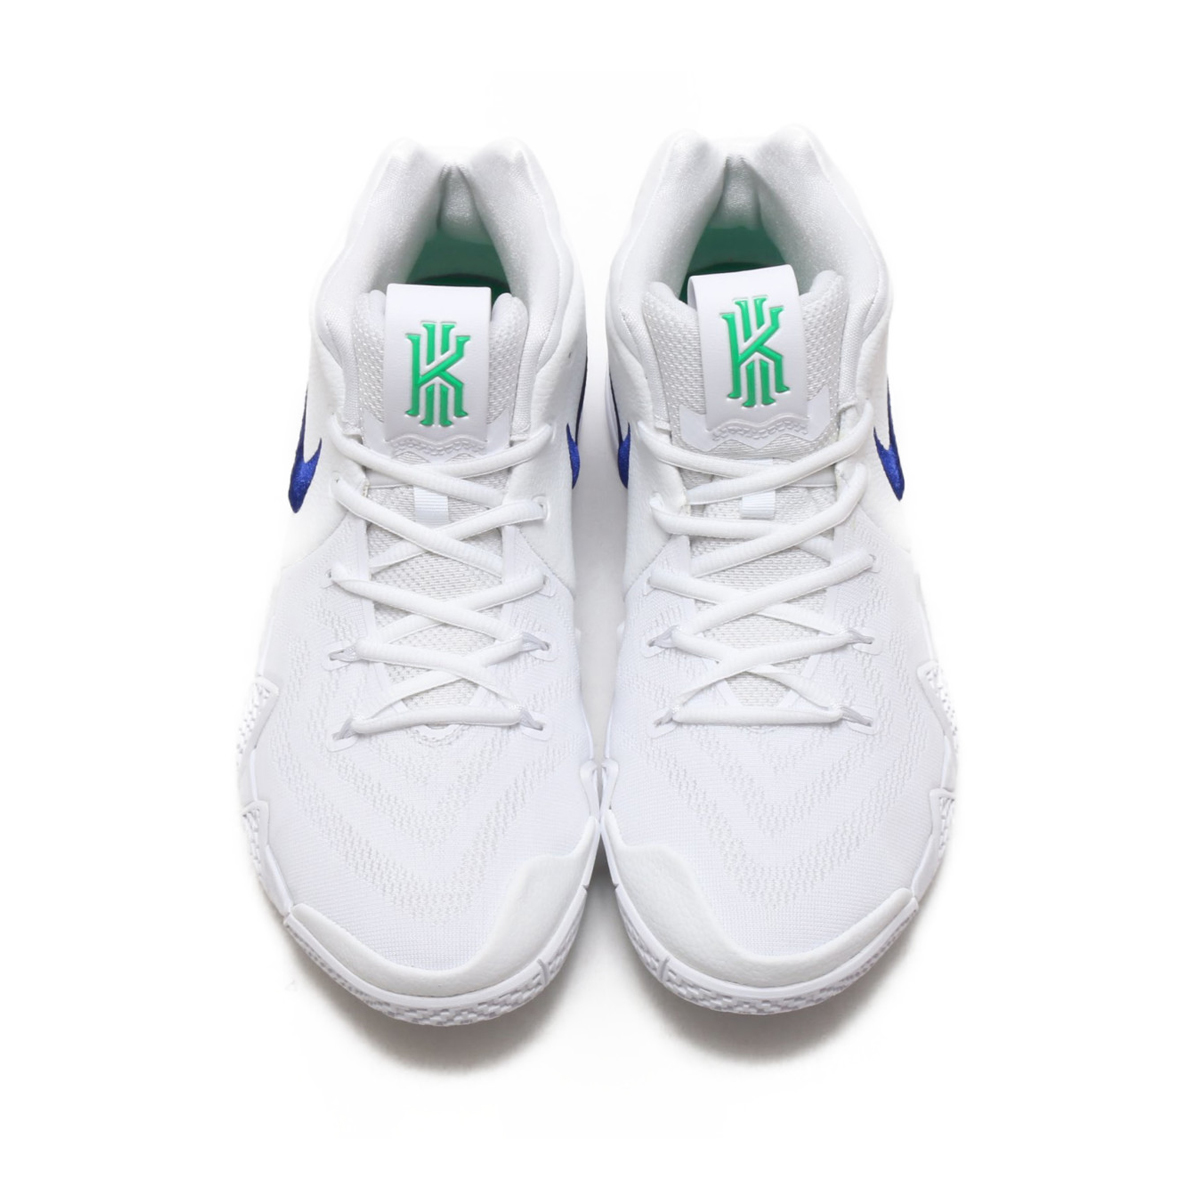 size 40 35f25 a9b39 NIKE KYRIE 4 EP (Nike chi Lee 4 EP) WHITE DEEP ROYAL BLUE 18SU-S